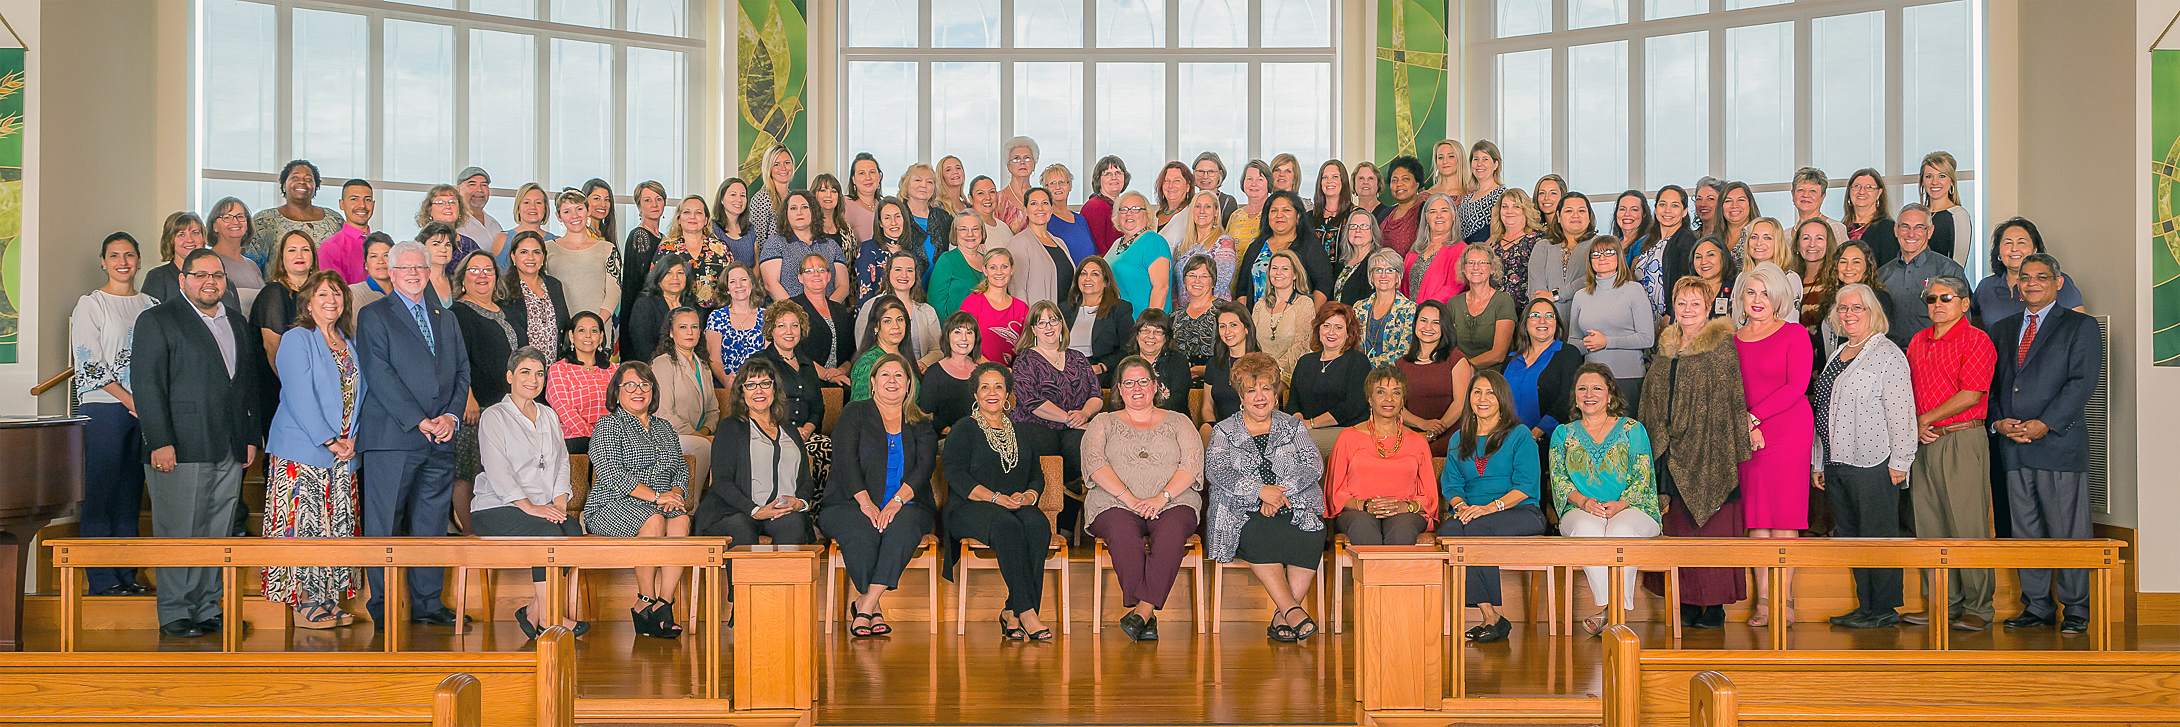 The Wesley Nurse program is Methodist Healthcare Ministries of South Texas' largest geographic outreach. There are currently 88 nurses, and they're supported by other staff of the San Antonio-based nonprofit. Photo courtesy Methodist Healthcare Ministries of South Texas.